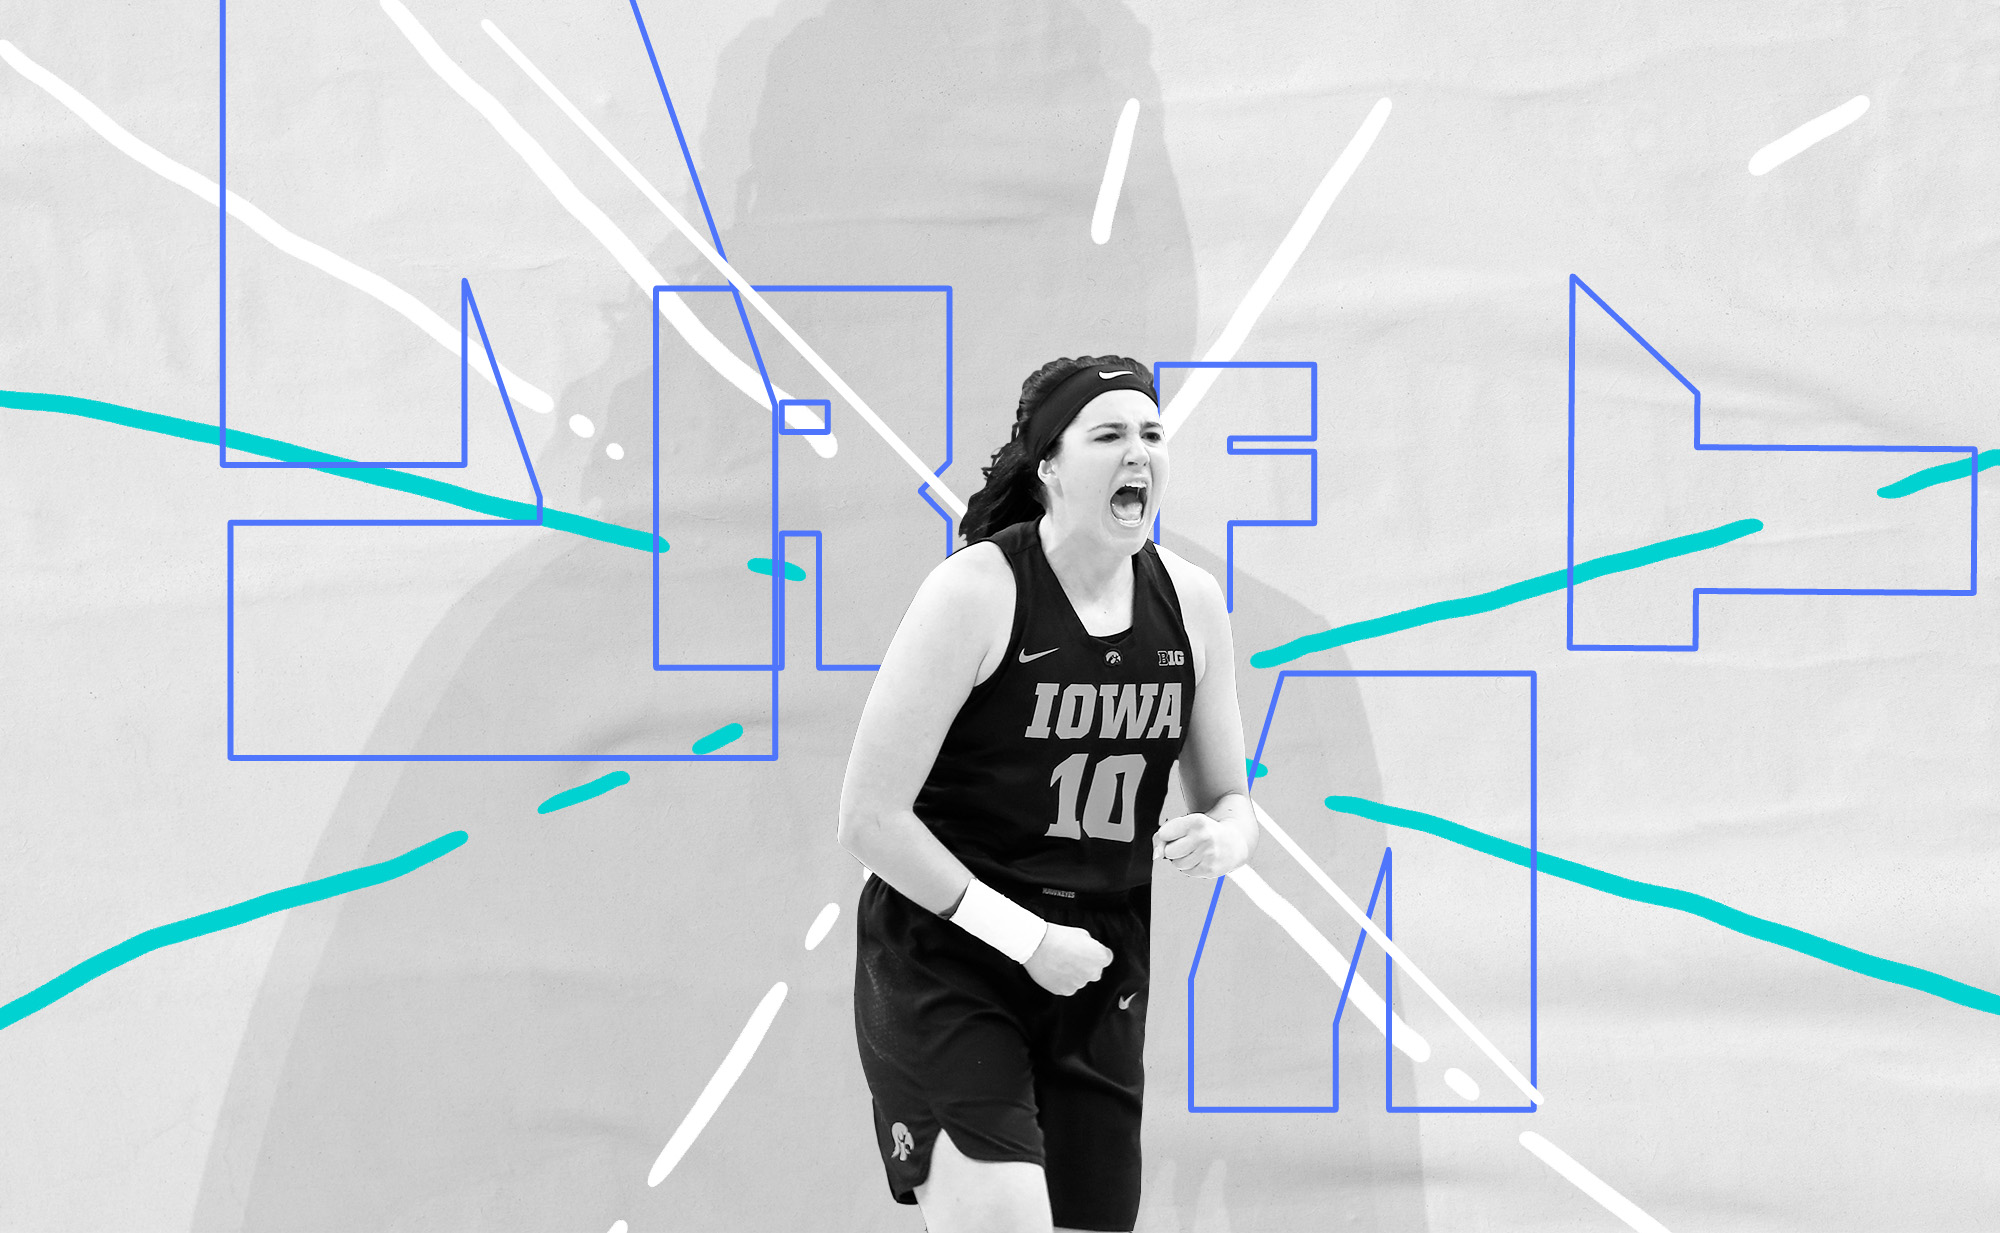 Megan Gustafson is the undeniable scorer headed to the Dallas Wings